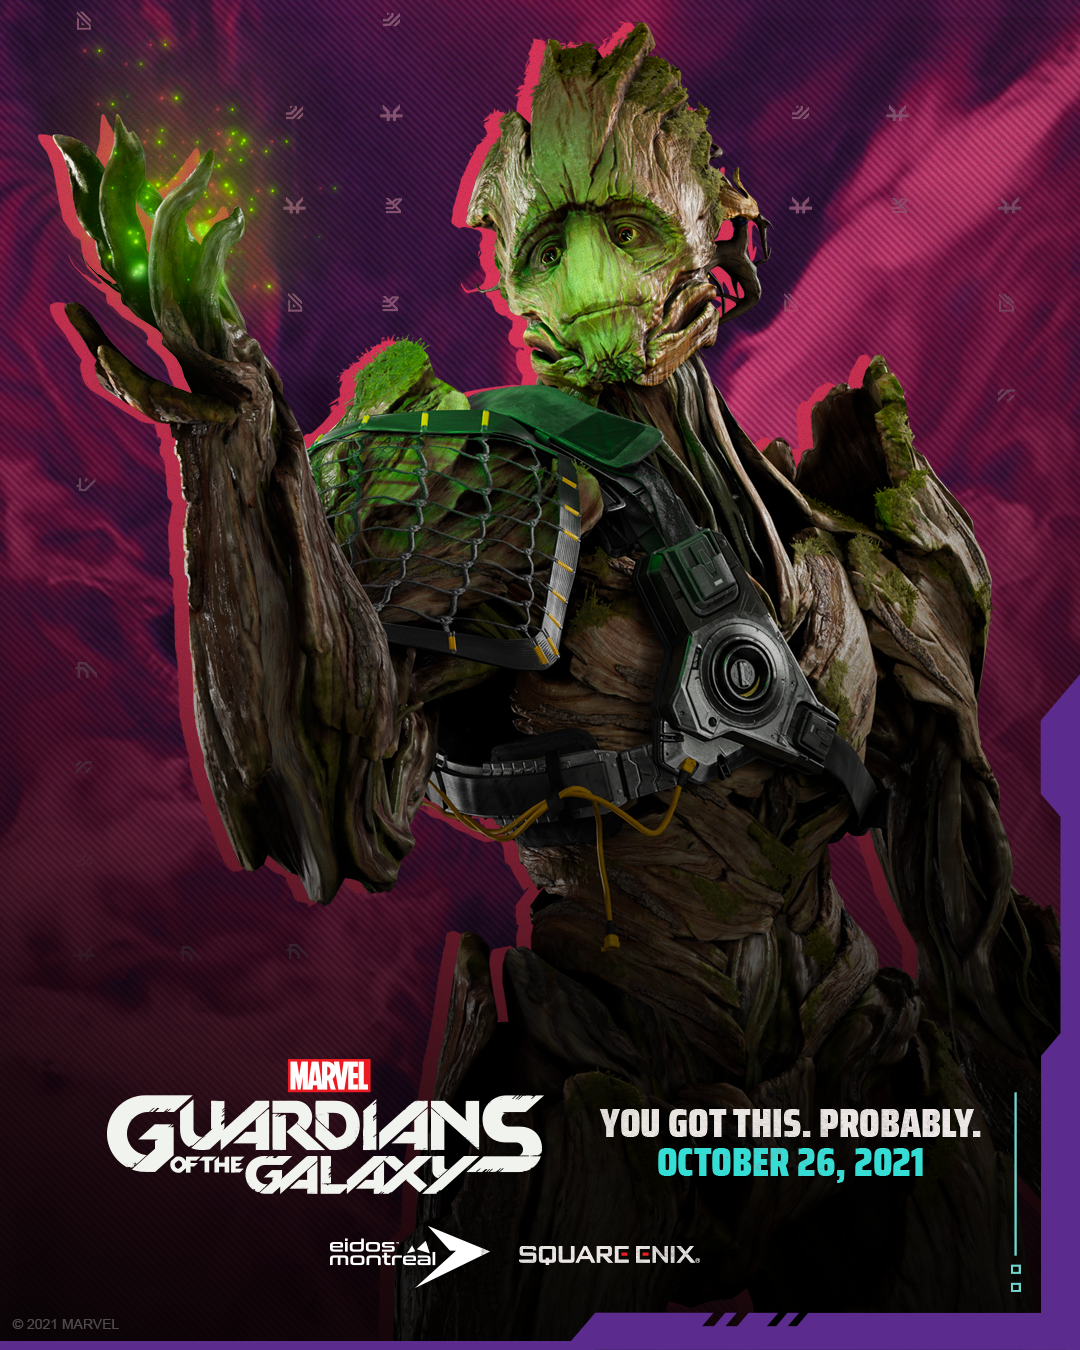 Groot with green fireflies around his hand, illuminating the kind expression on his face.